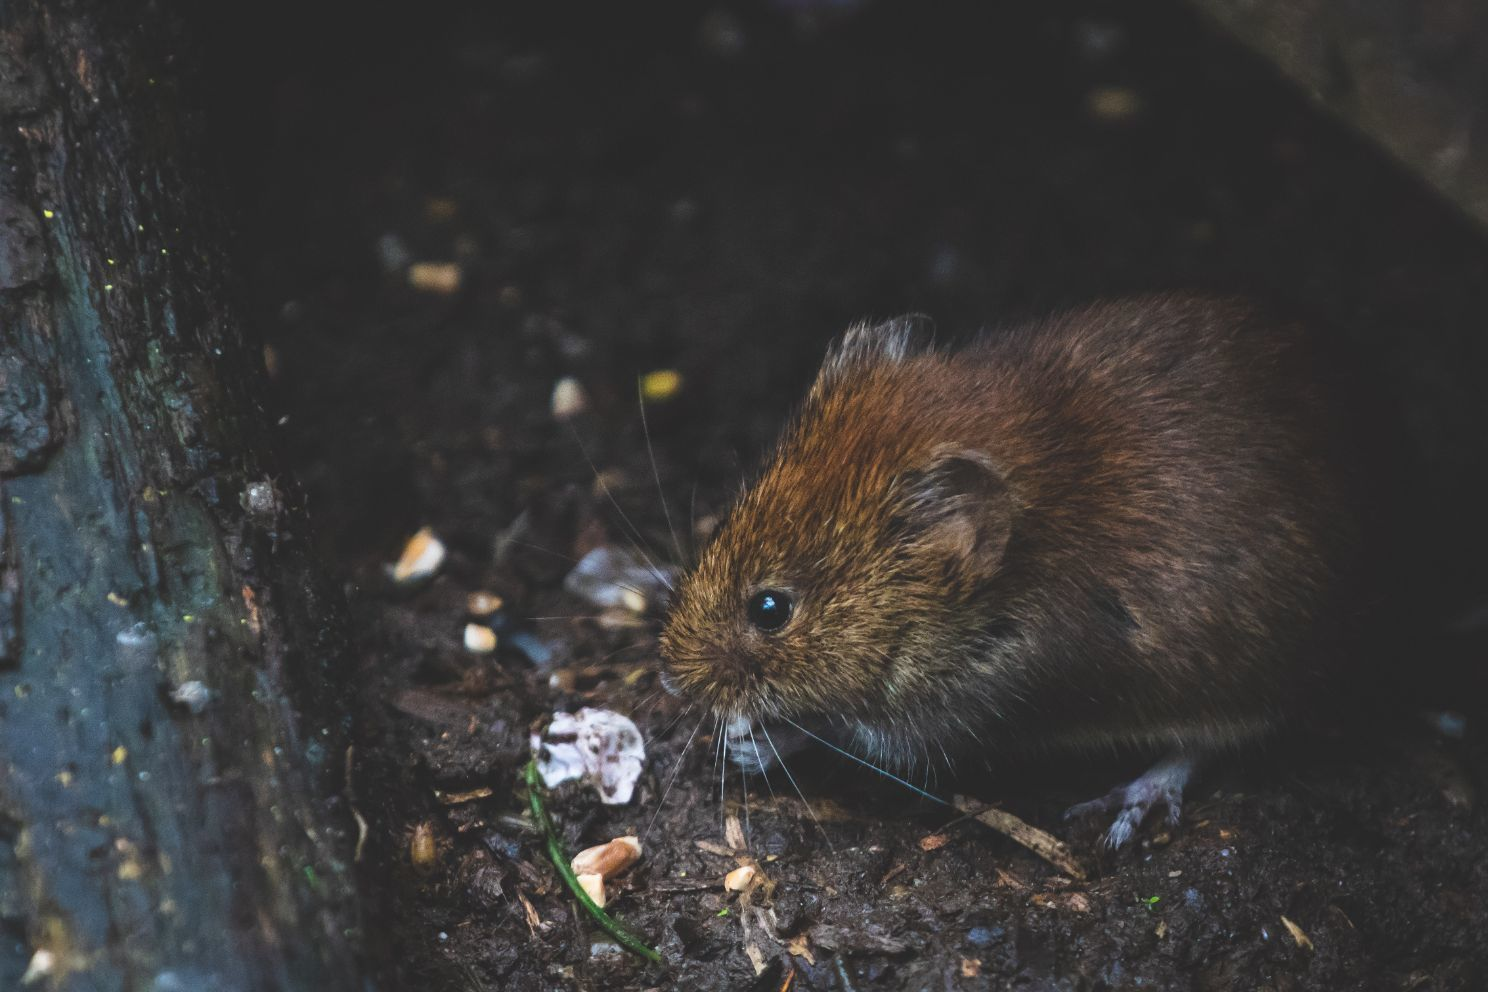 vole nibbling on food